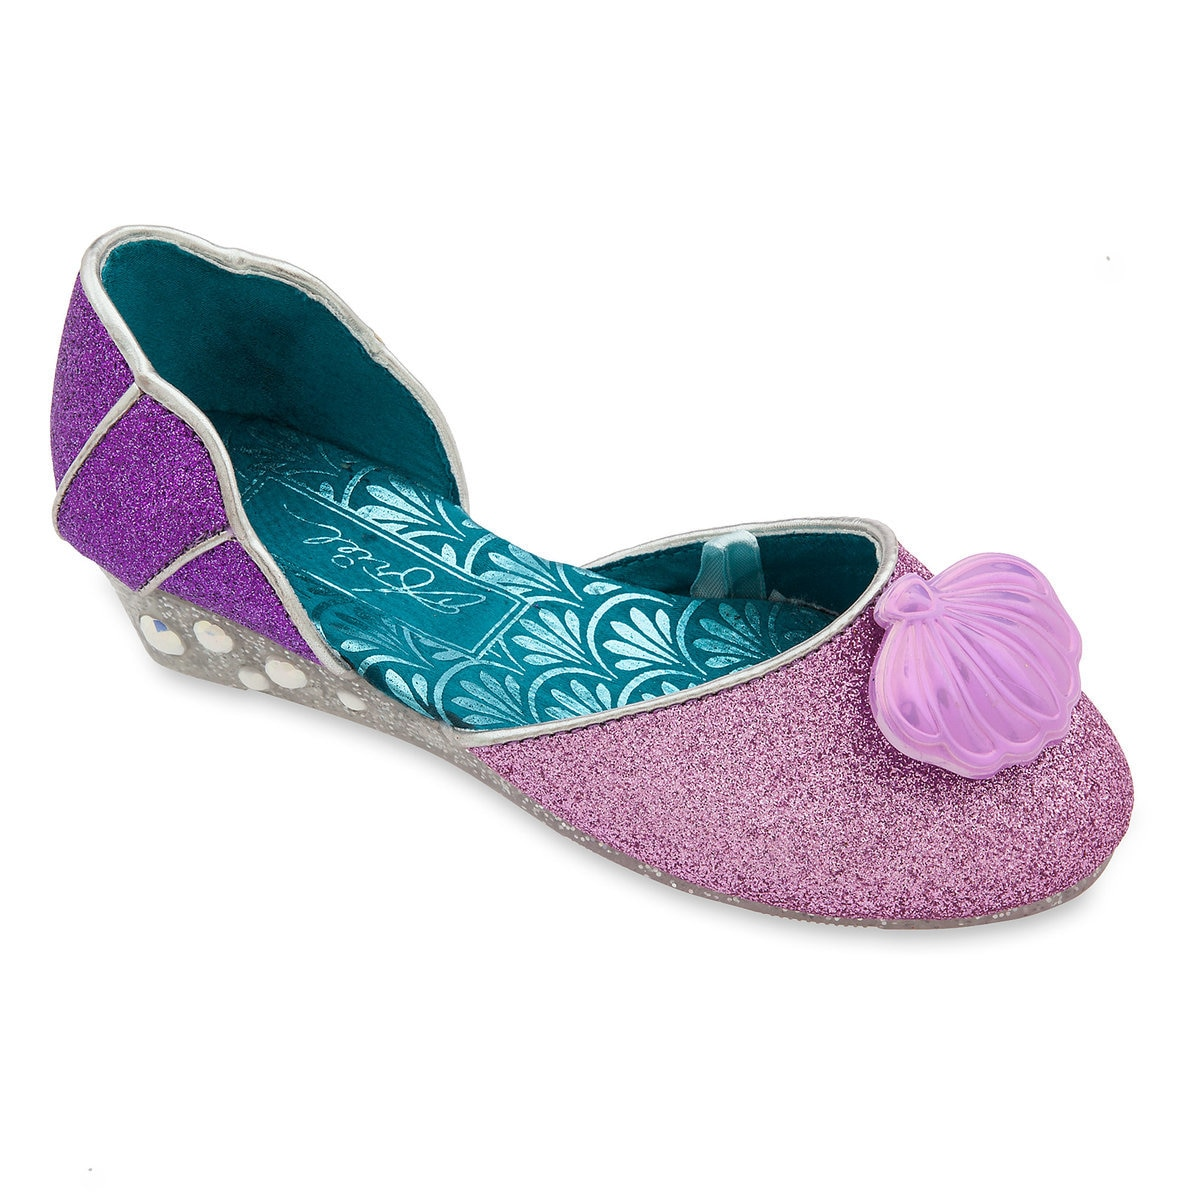 b19ca49ac308c1 Product Image of Ariel Costume Shoes for Kids   1